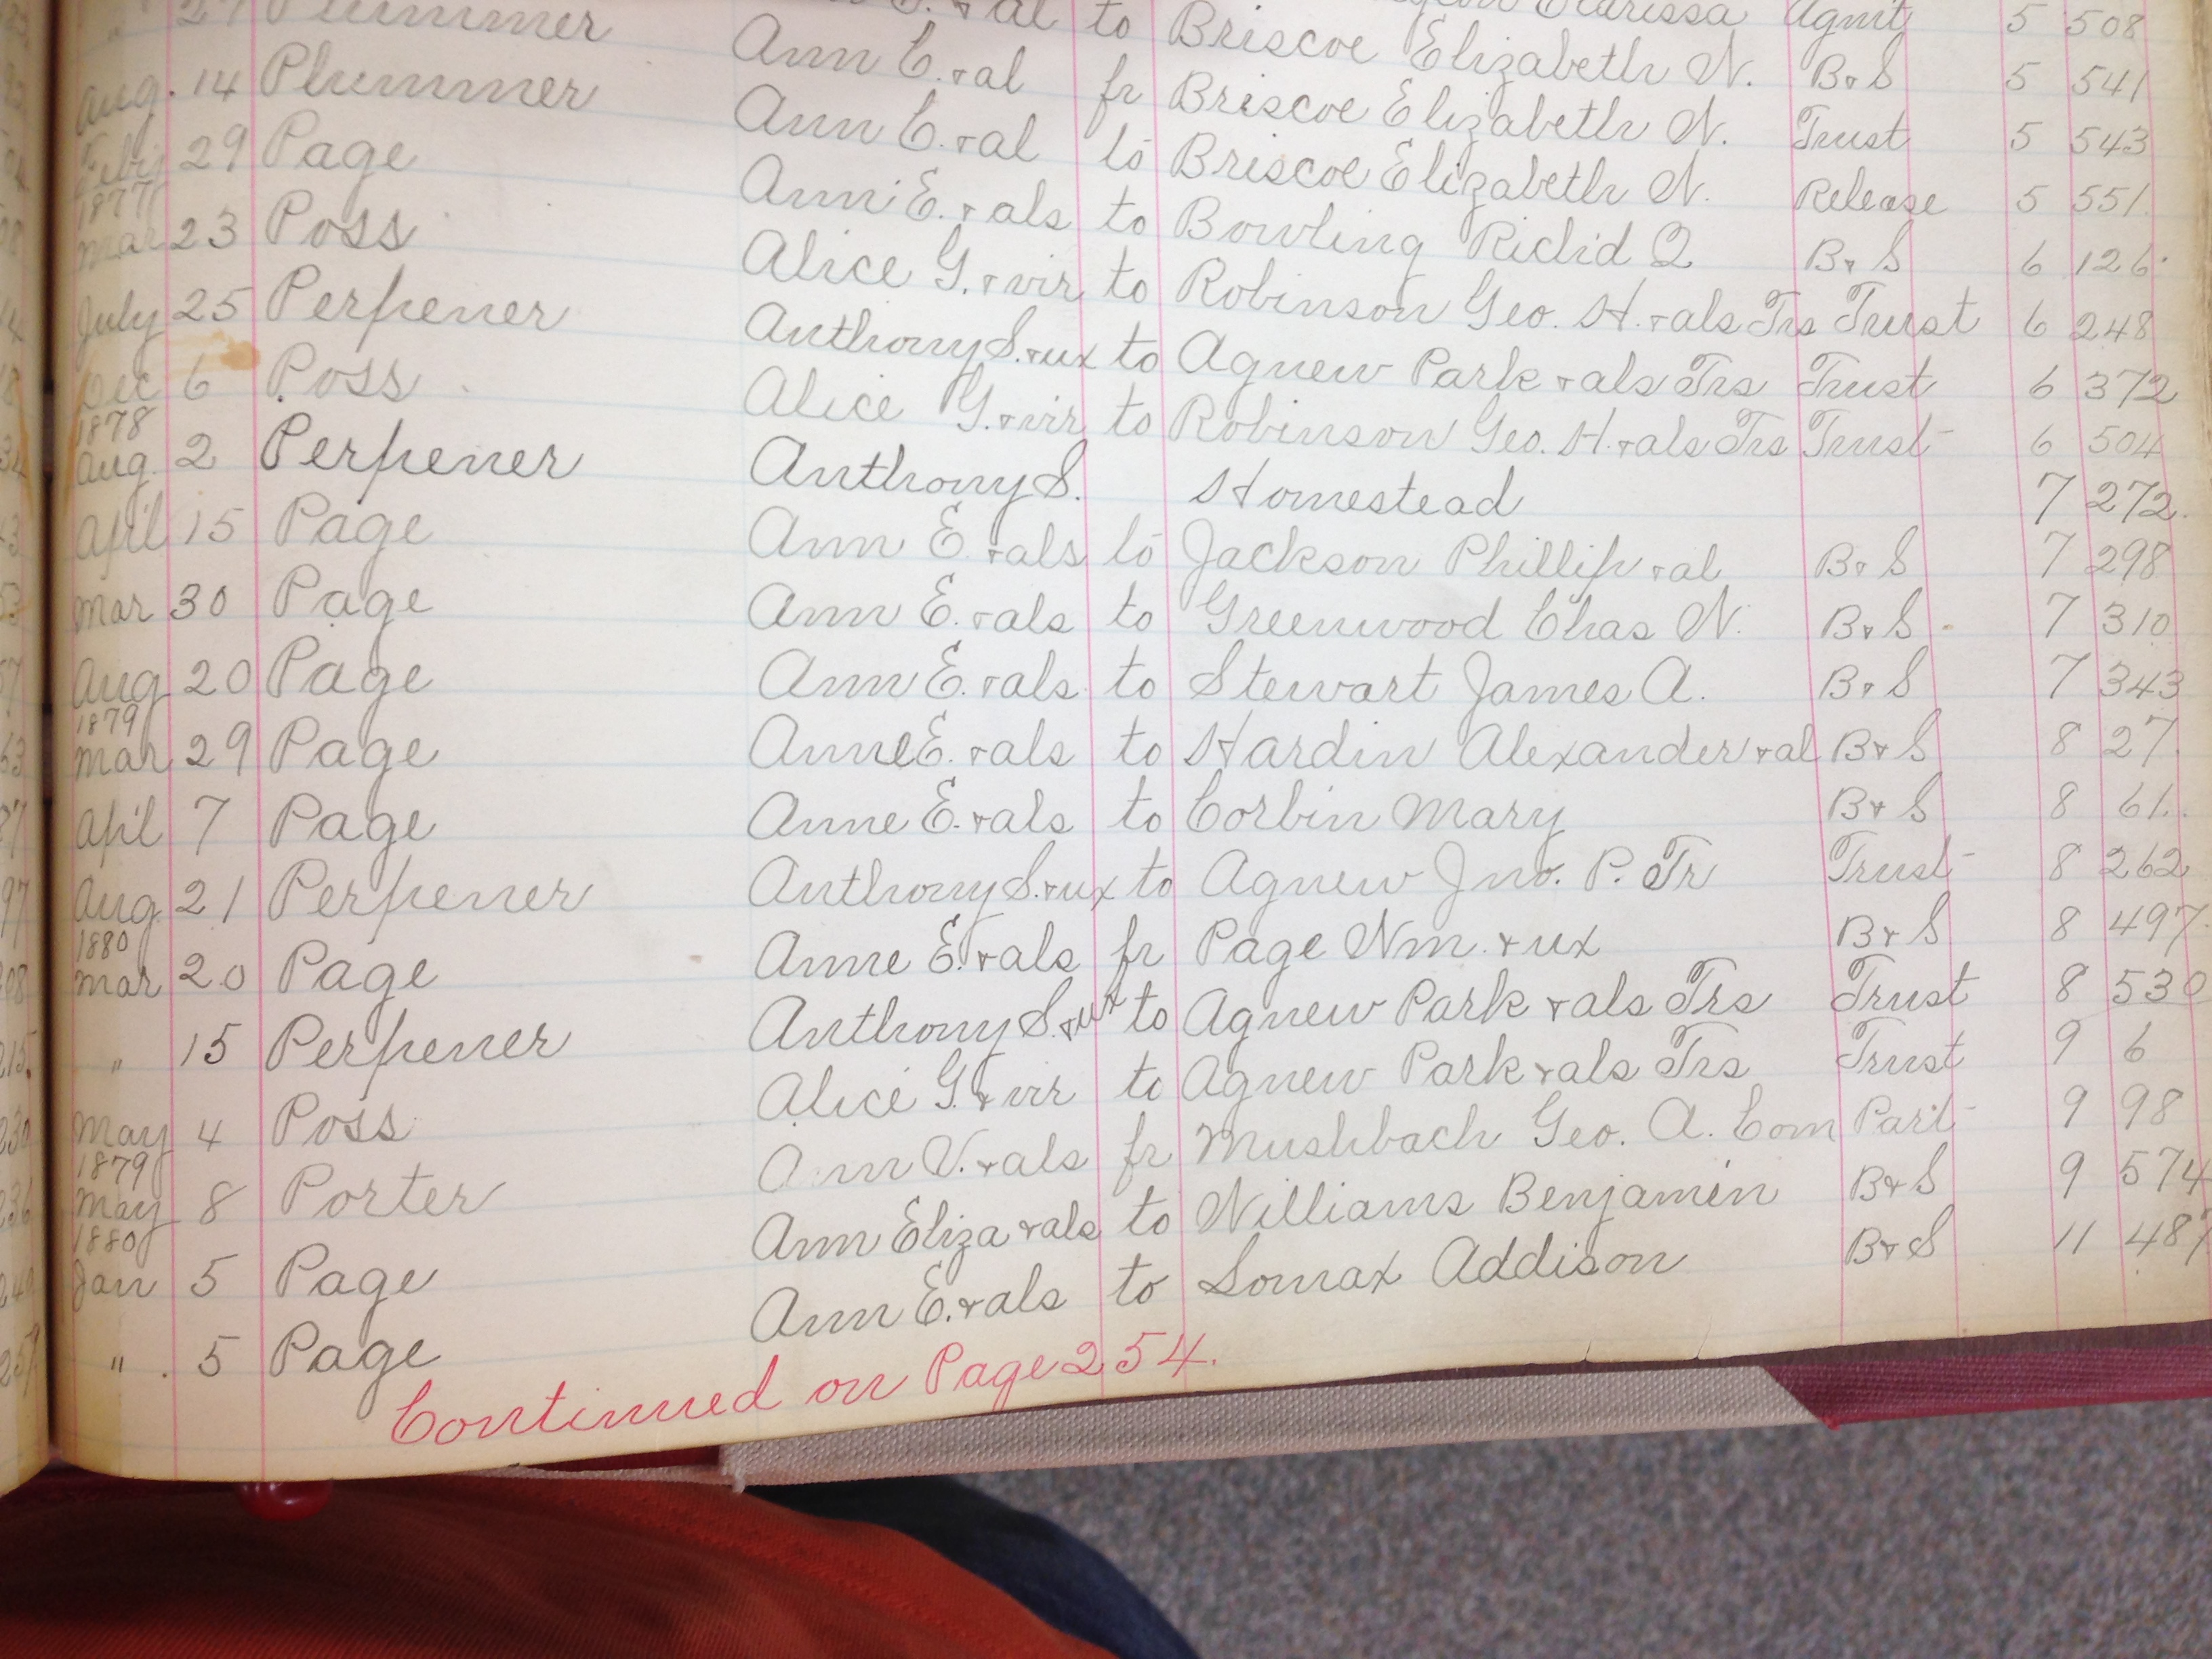 Deeds Ledger open to first page of entries showing Anne Page